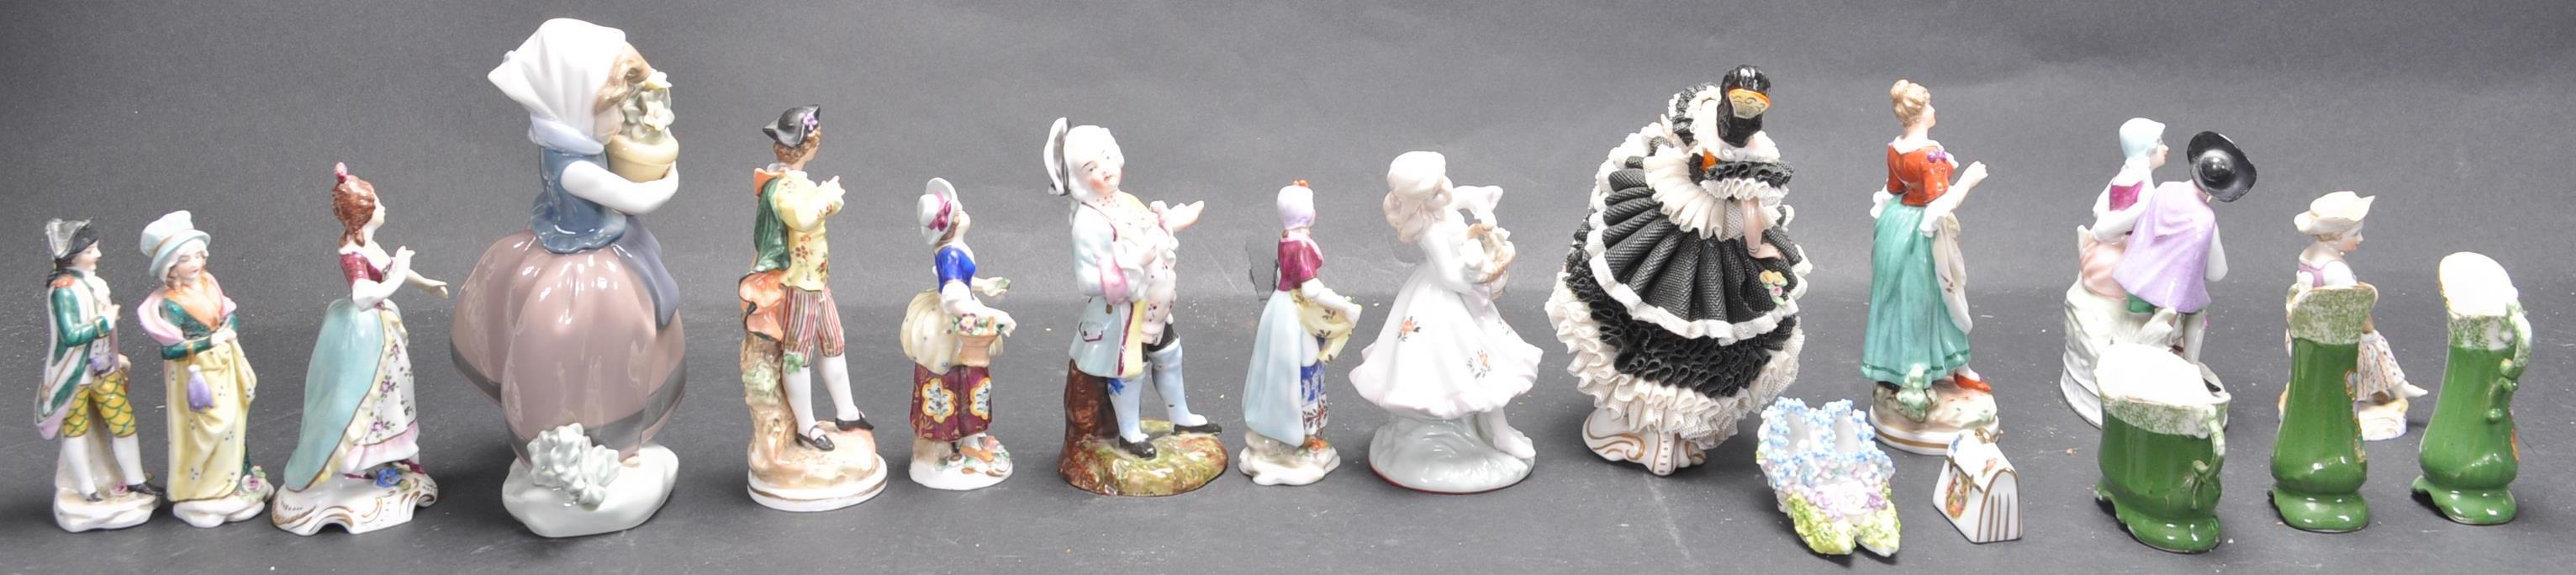 LARGE COLLECTION OF EARLY 20TH CENTURY CONTINENTAL FIGURINES - Image 2 of 6